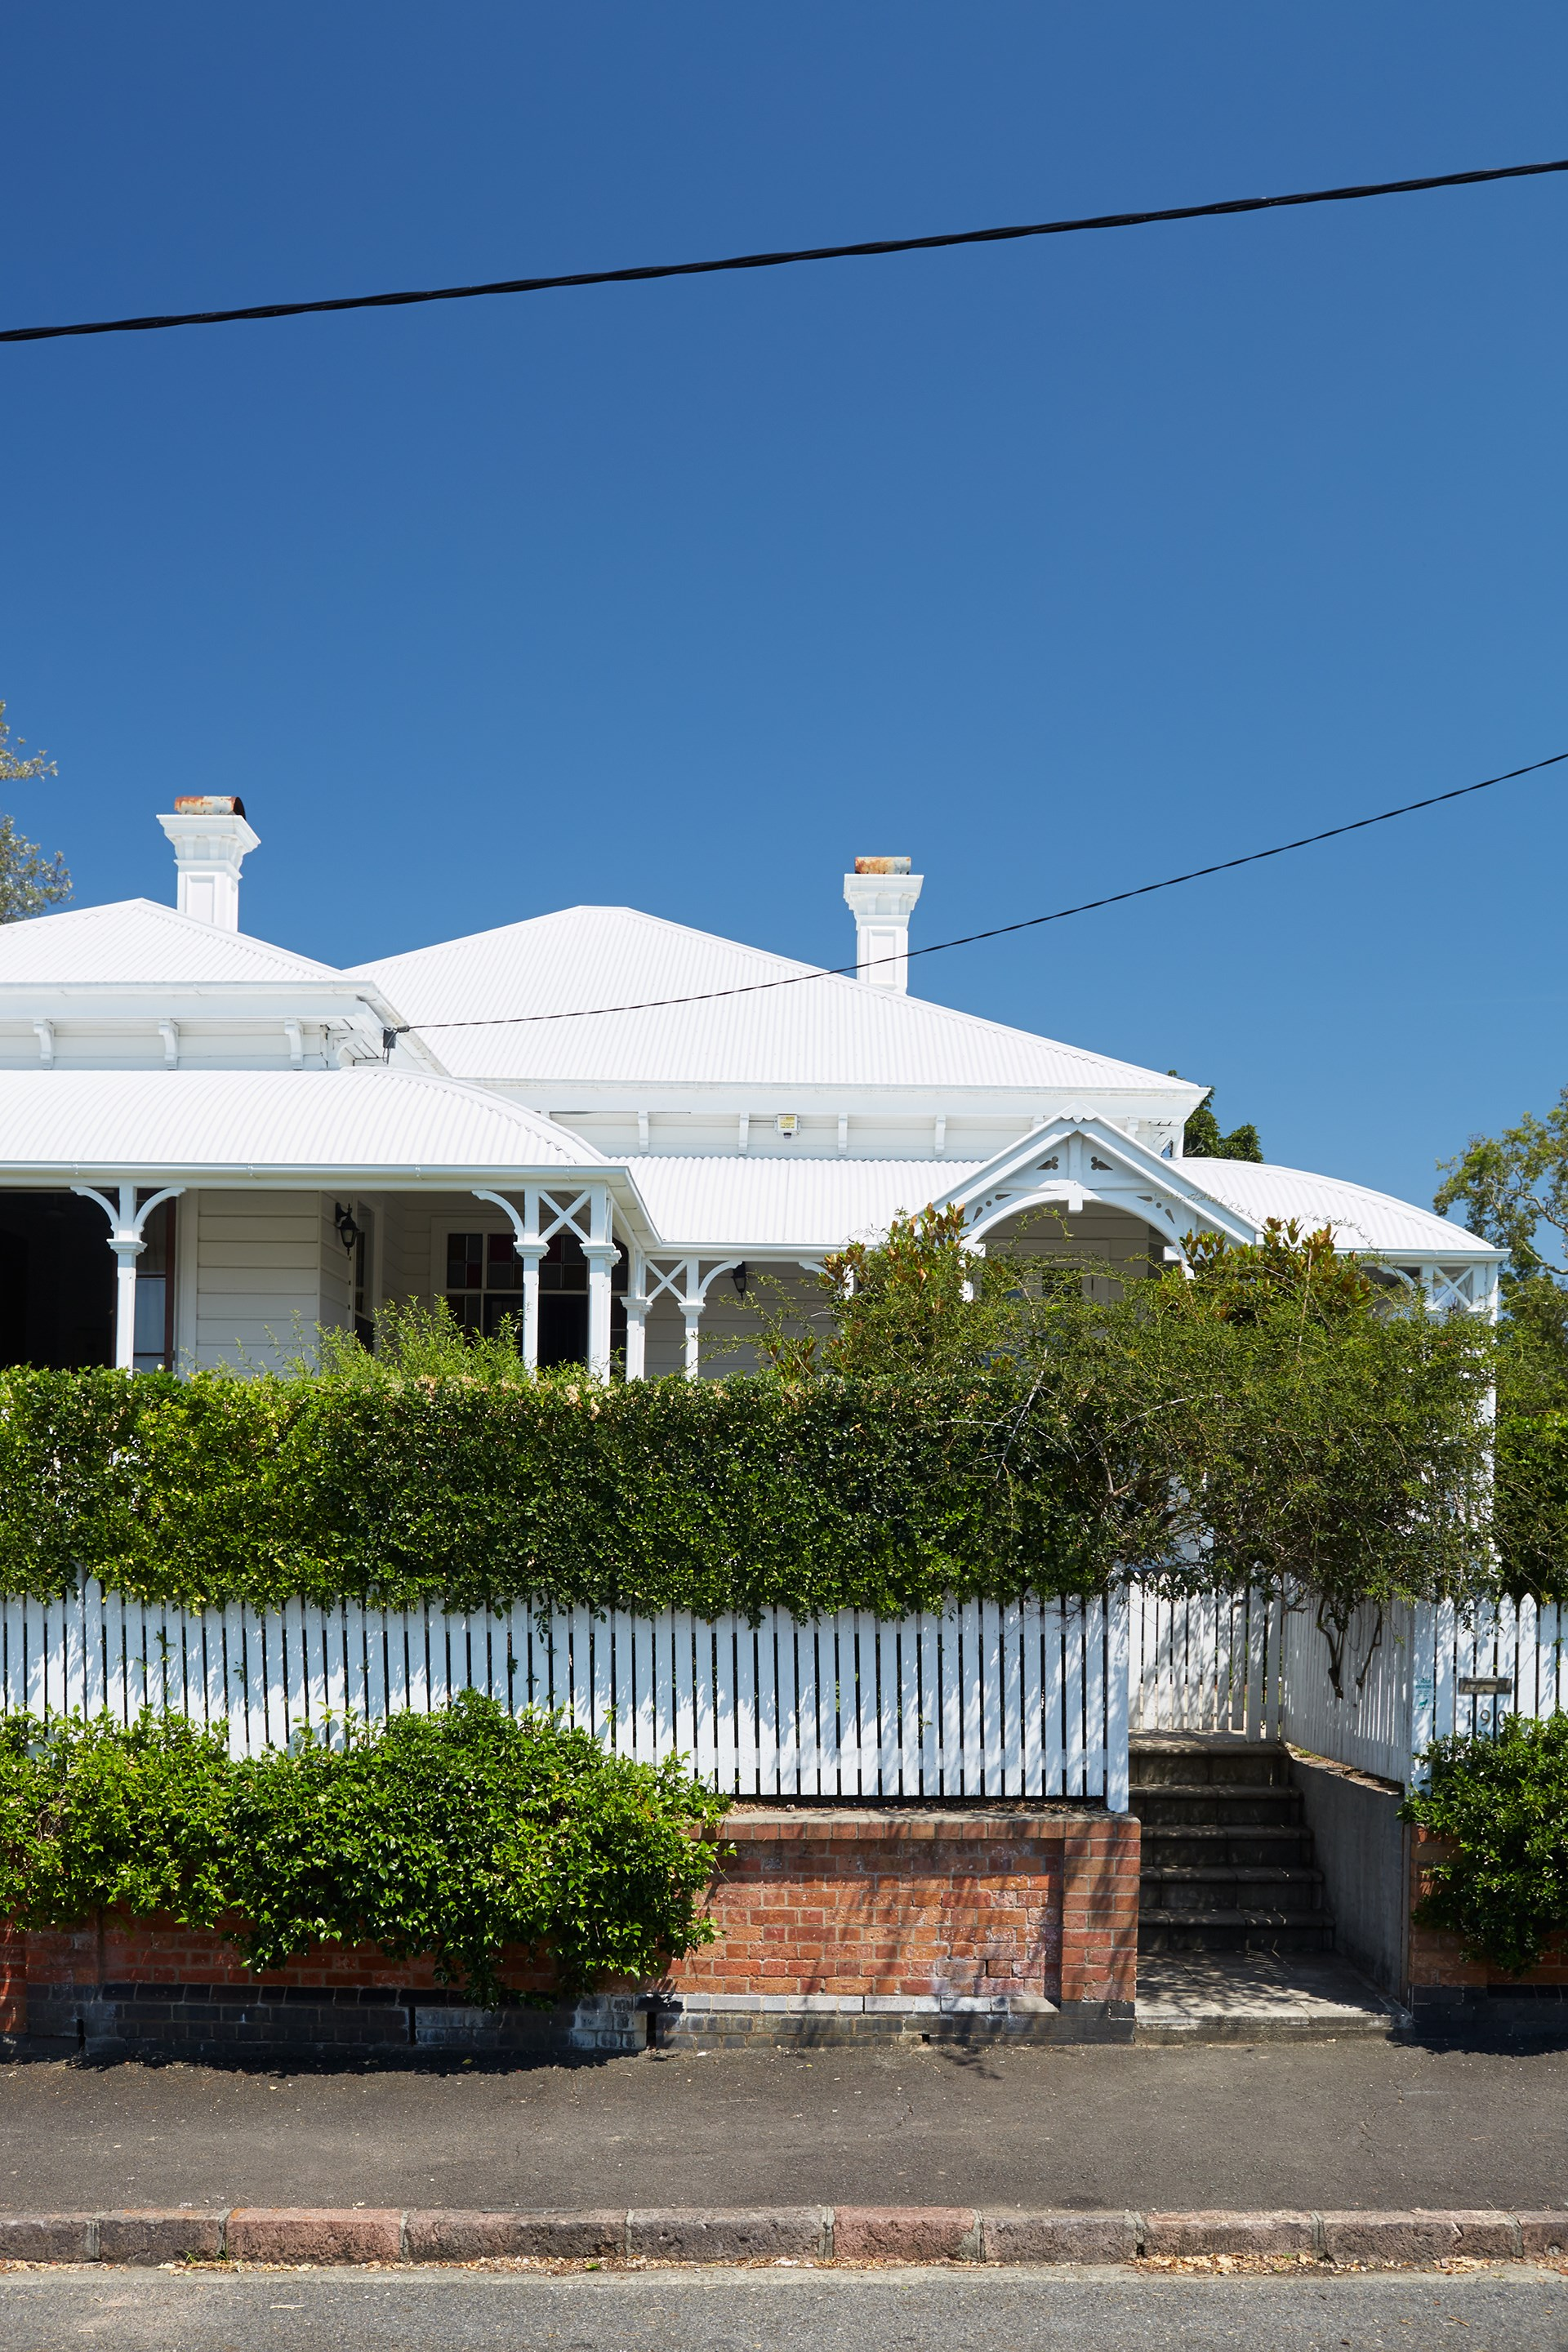 The elevated position of this [heritage-listed Queenslander](http://www.homestolove.com.au/a-heritage-listed-queenslander-in-brisbane-4216) offers views to the horizon and a sense of privacy from the street below. Photo: Alicia Taylor